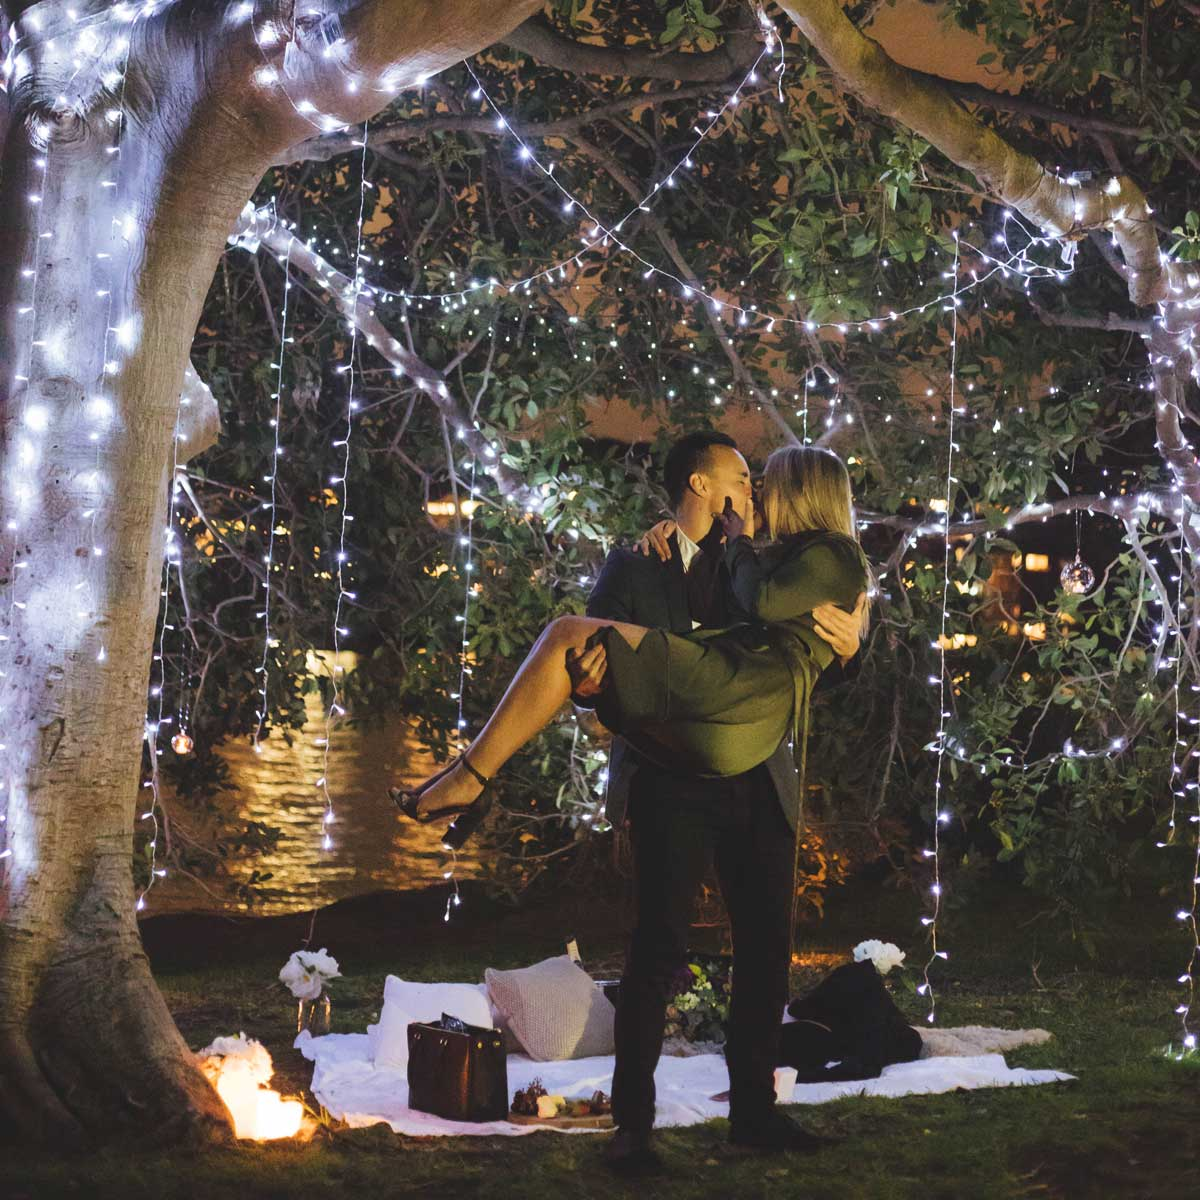 Proposal ideas for The Romantic. Image by Evoke Photography.